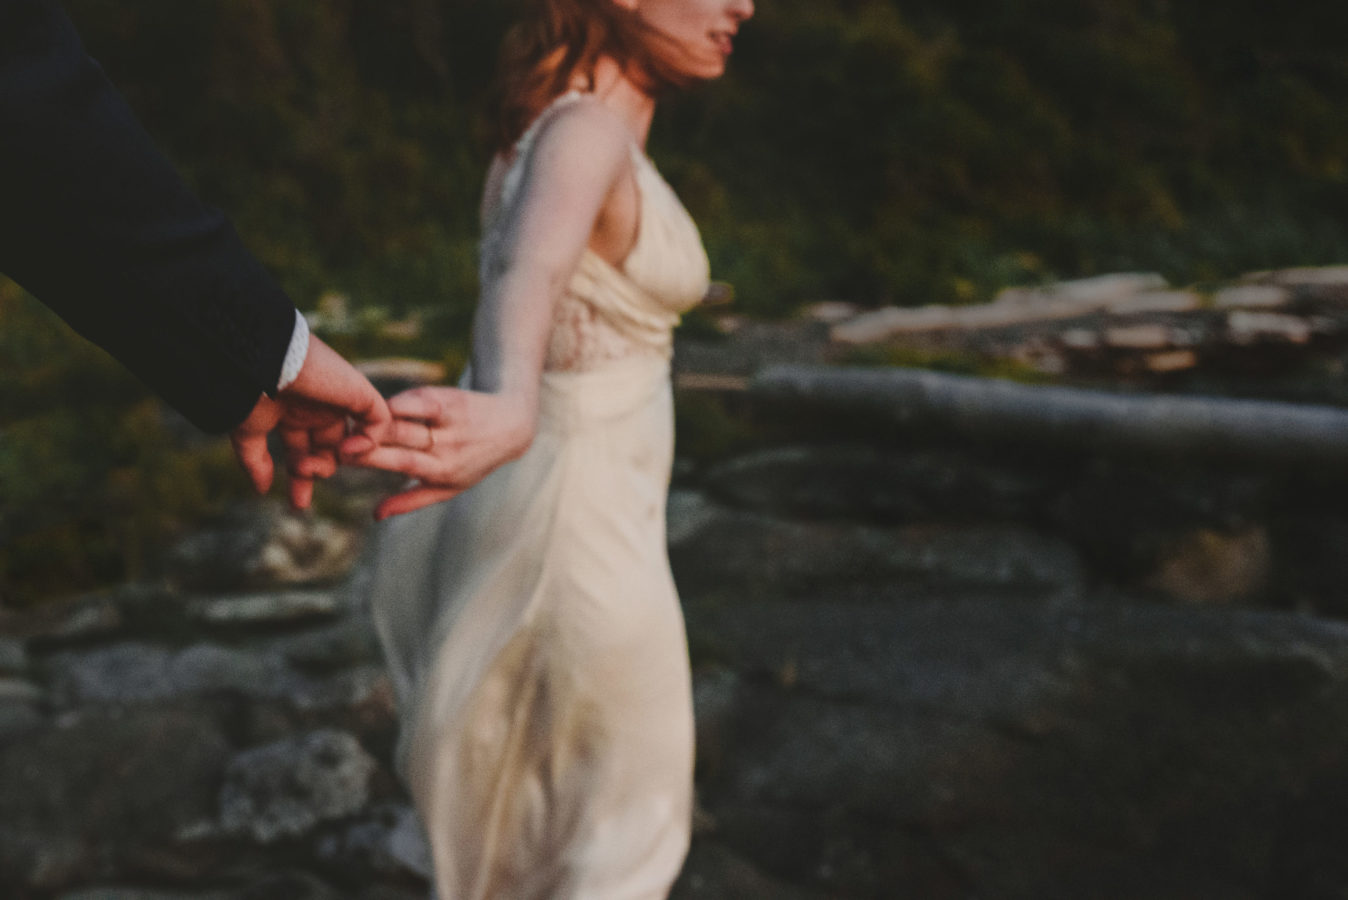 out of focus photo of a bride reaching back and holding her groom's hand walking along a beach after sunset